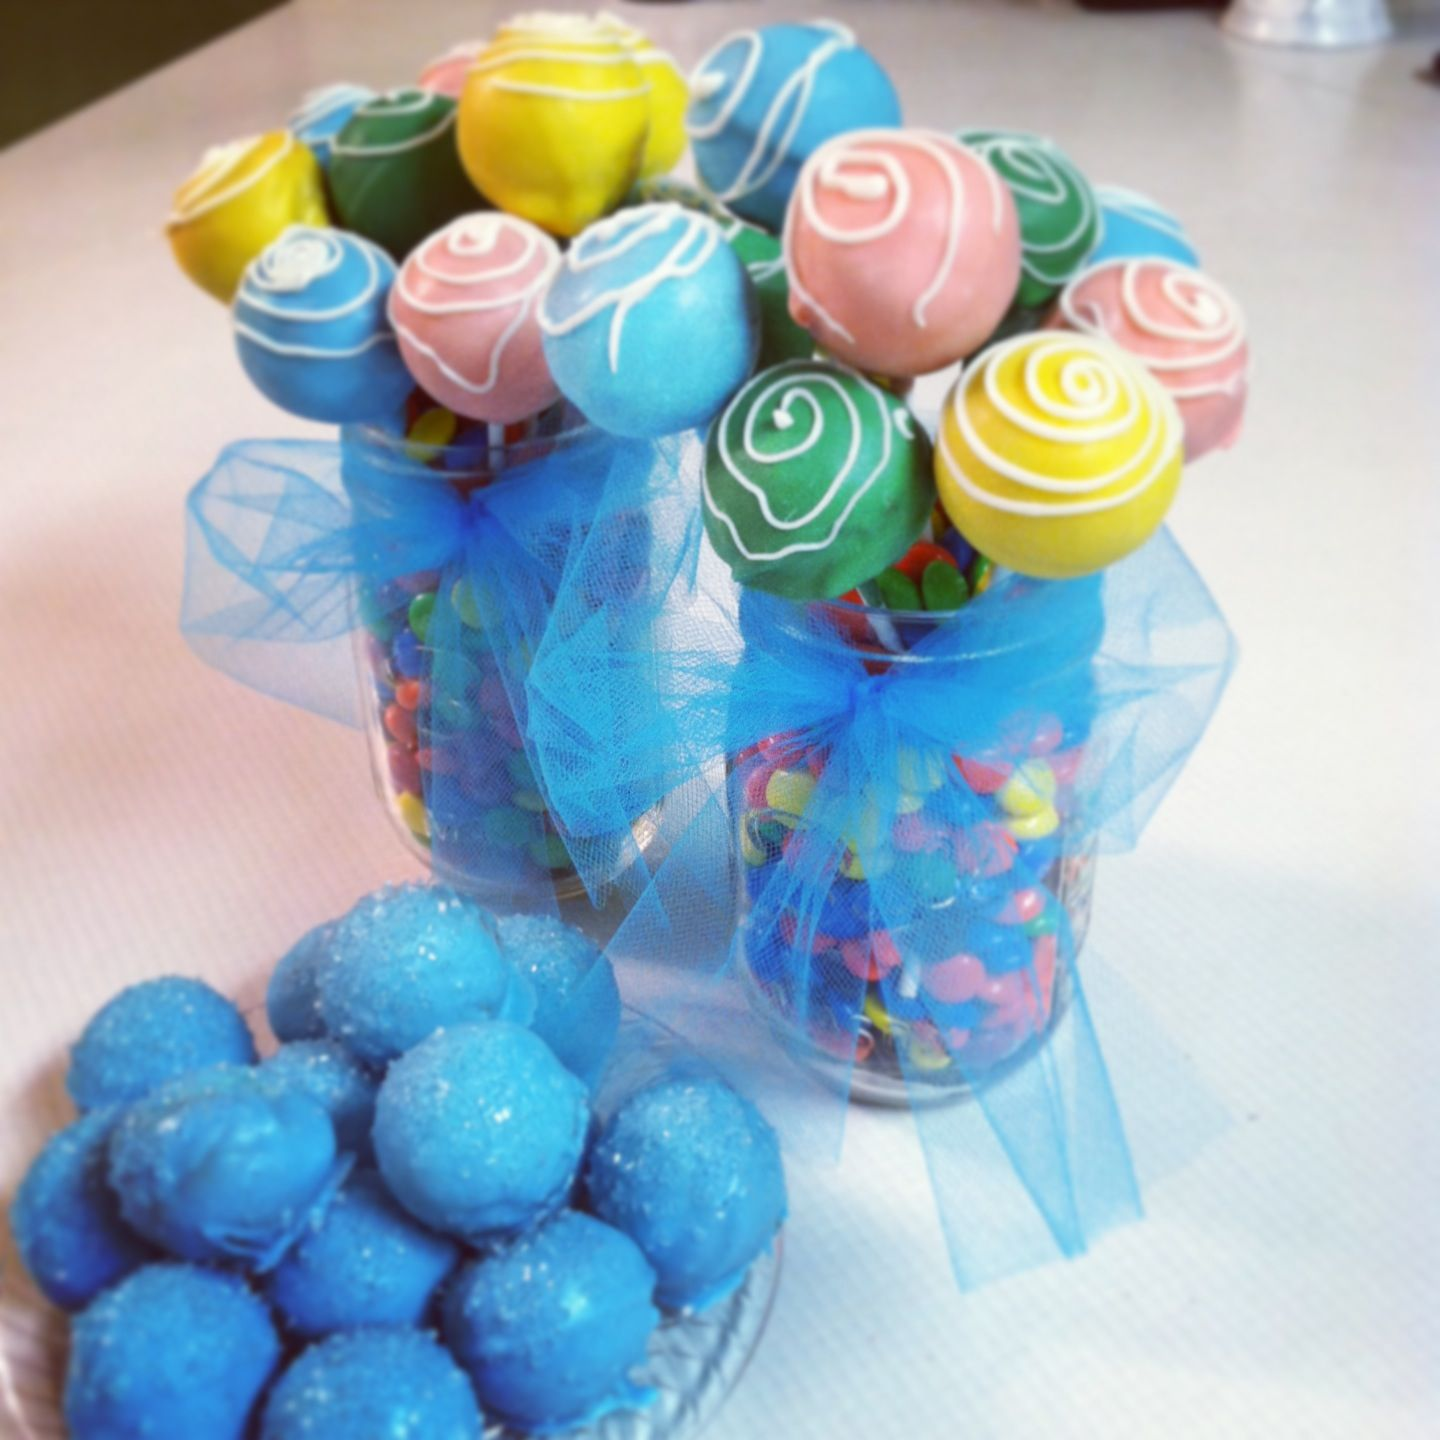 Cake pop bouquet presentation! Fill a mason jar with candy, stick in multi colored cake pops, and add a bow! So easy! #cakepopbouquet